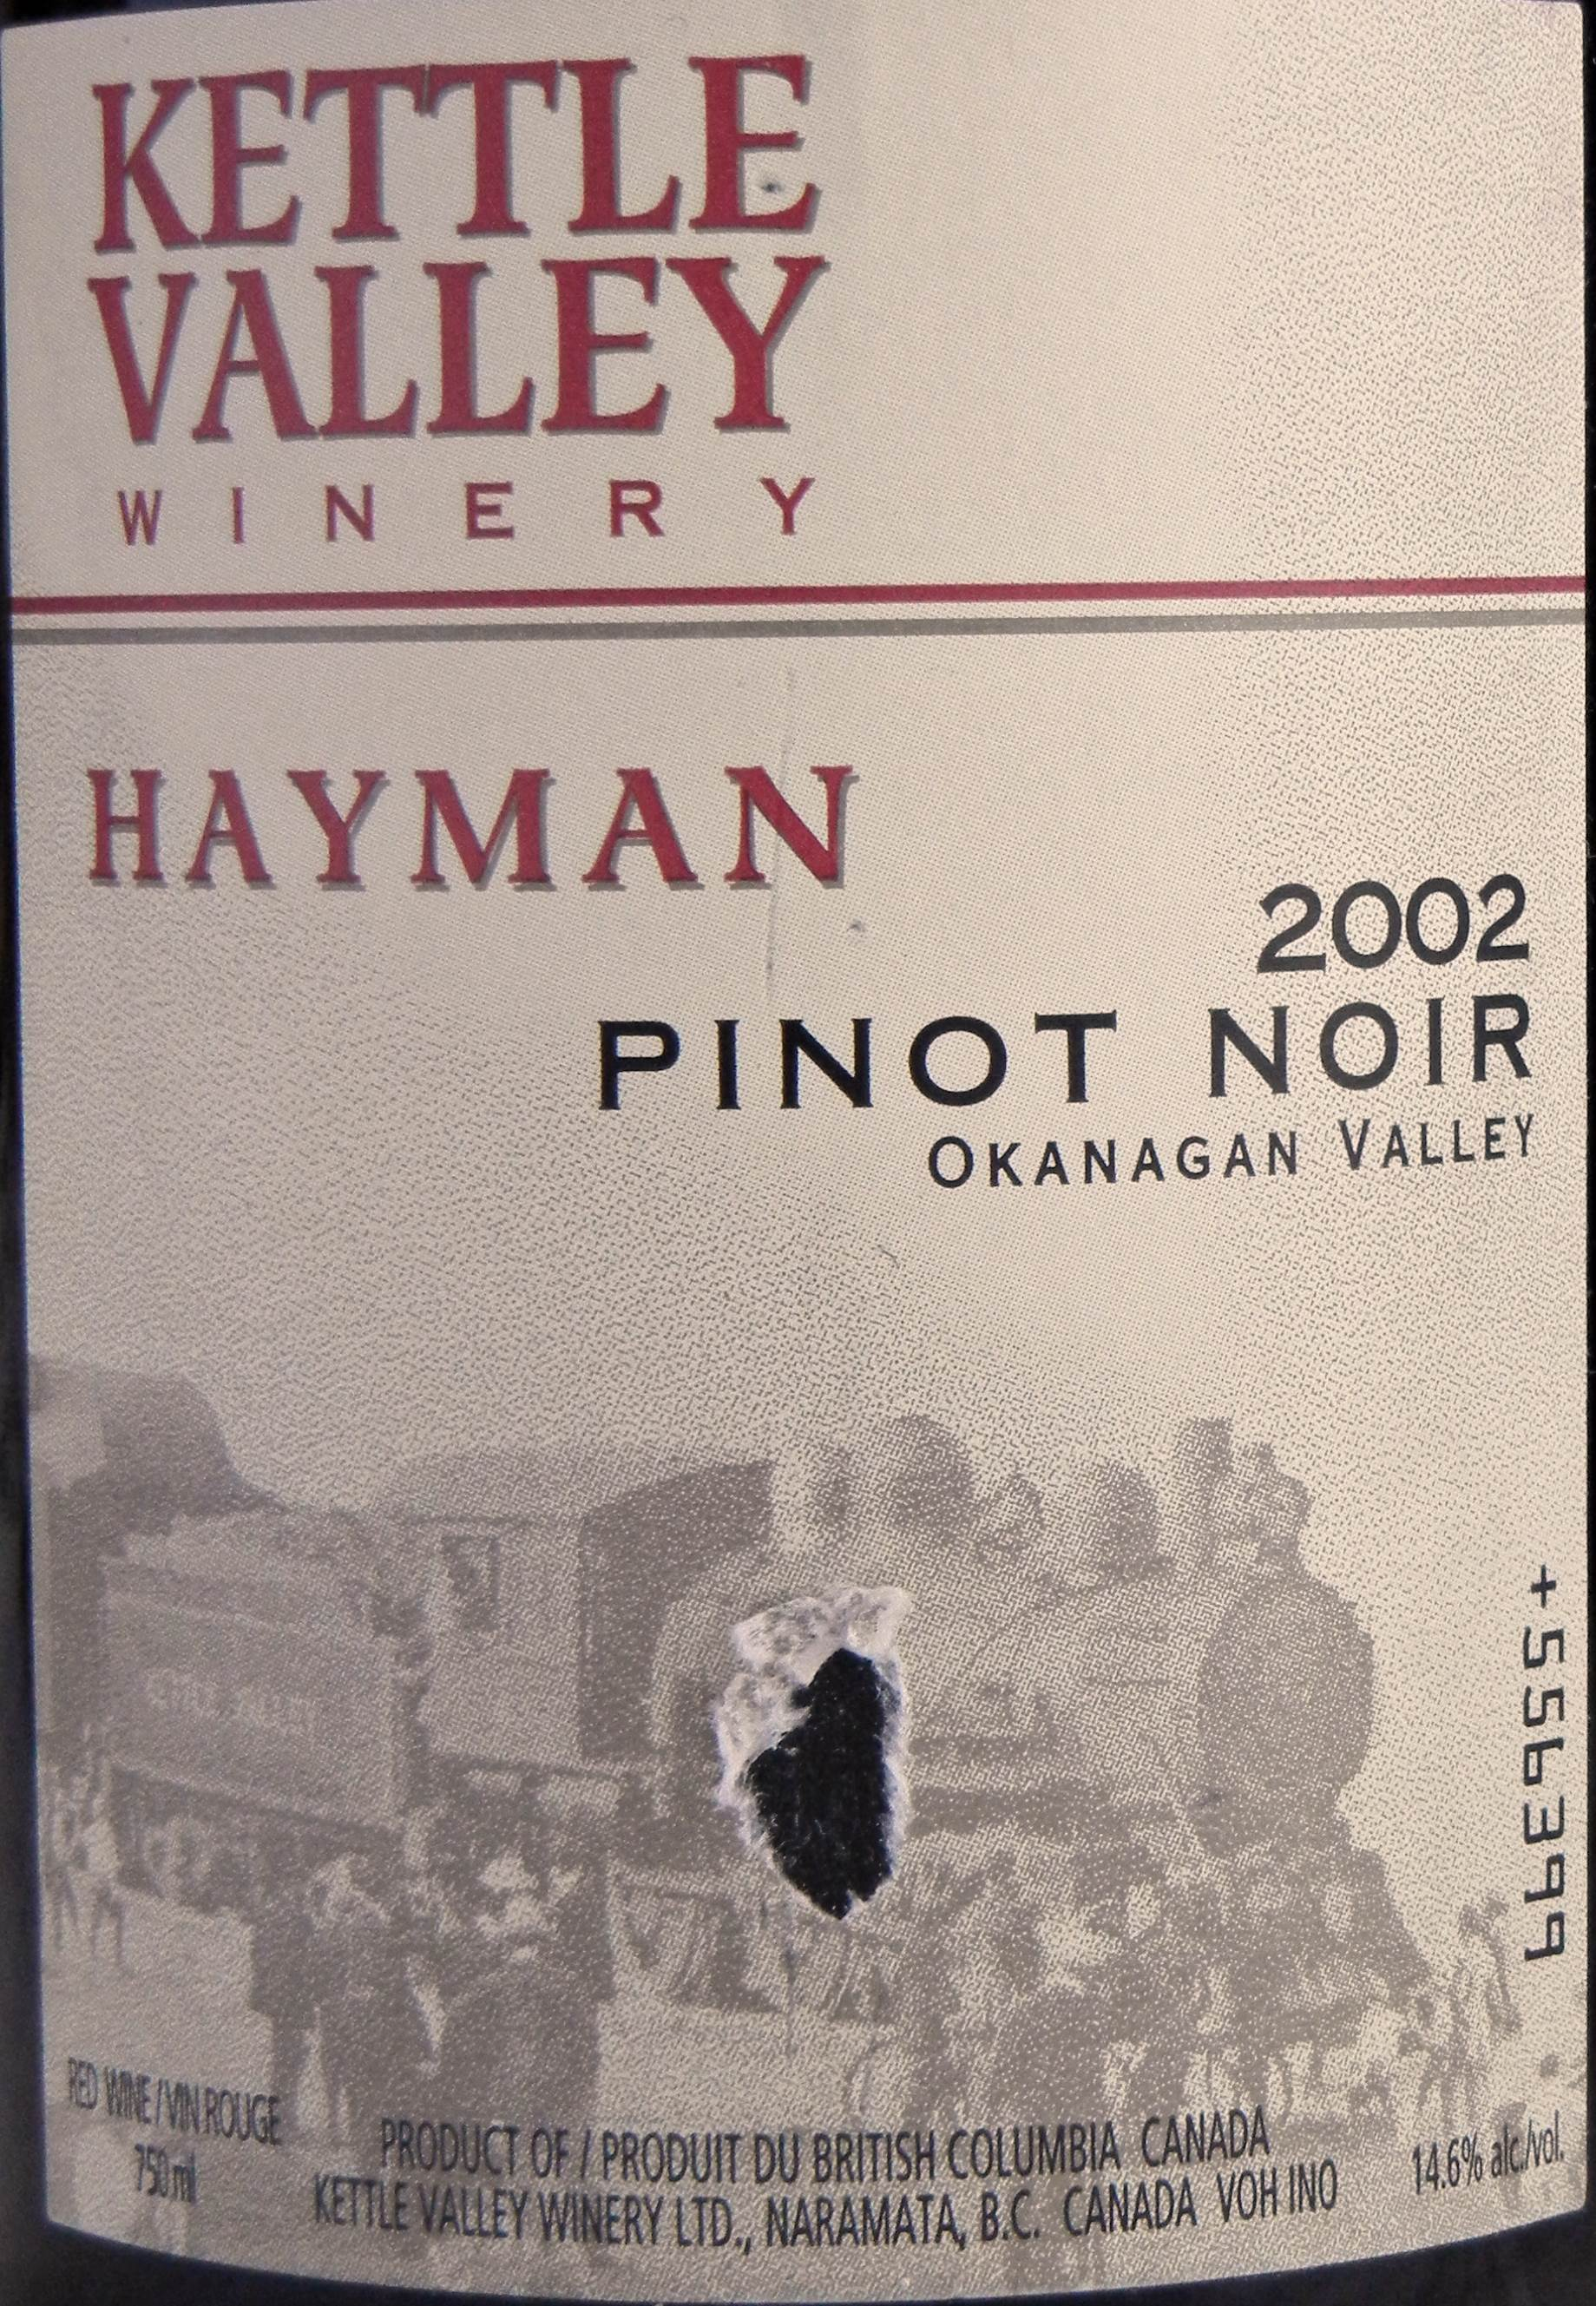 Kettle Valley Hayman Pinot Noir 2002 Label - BC Tasting Review 25